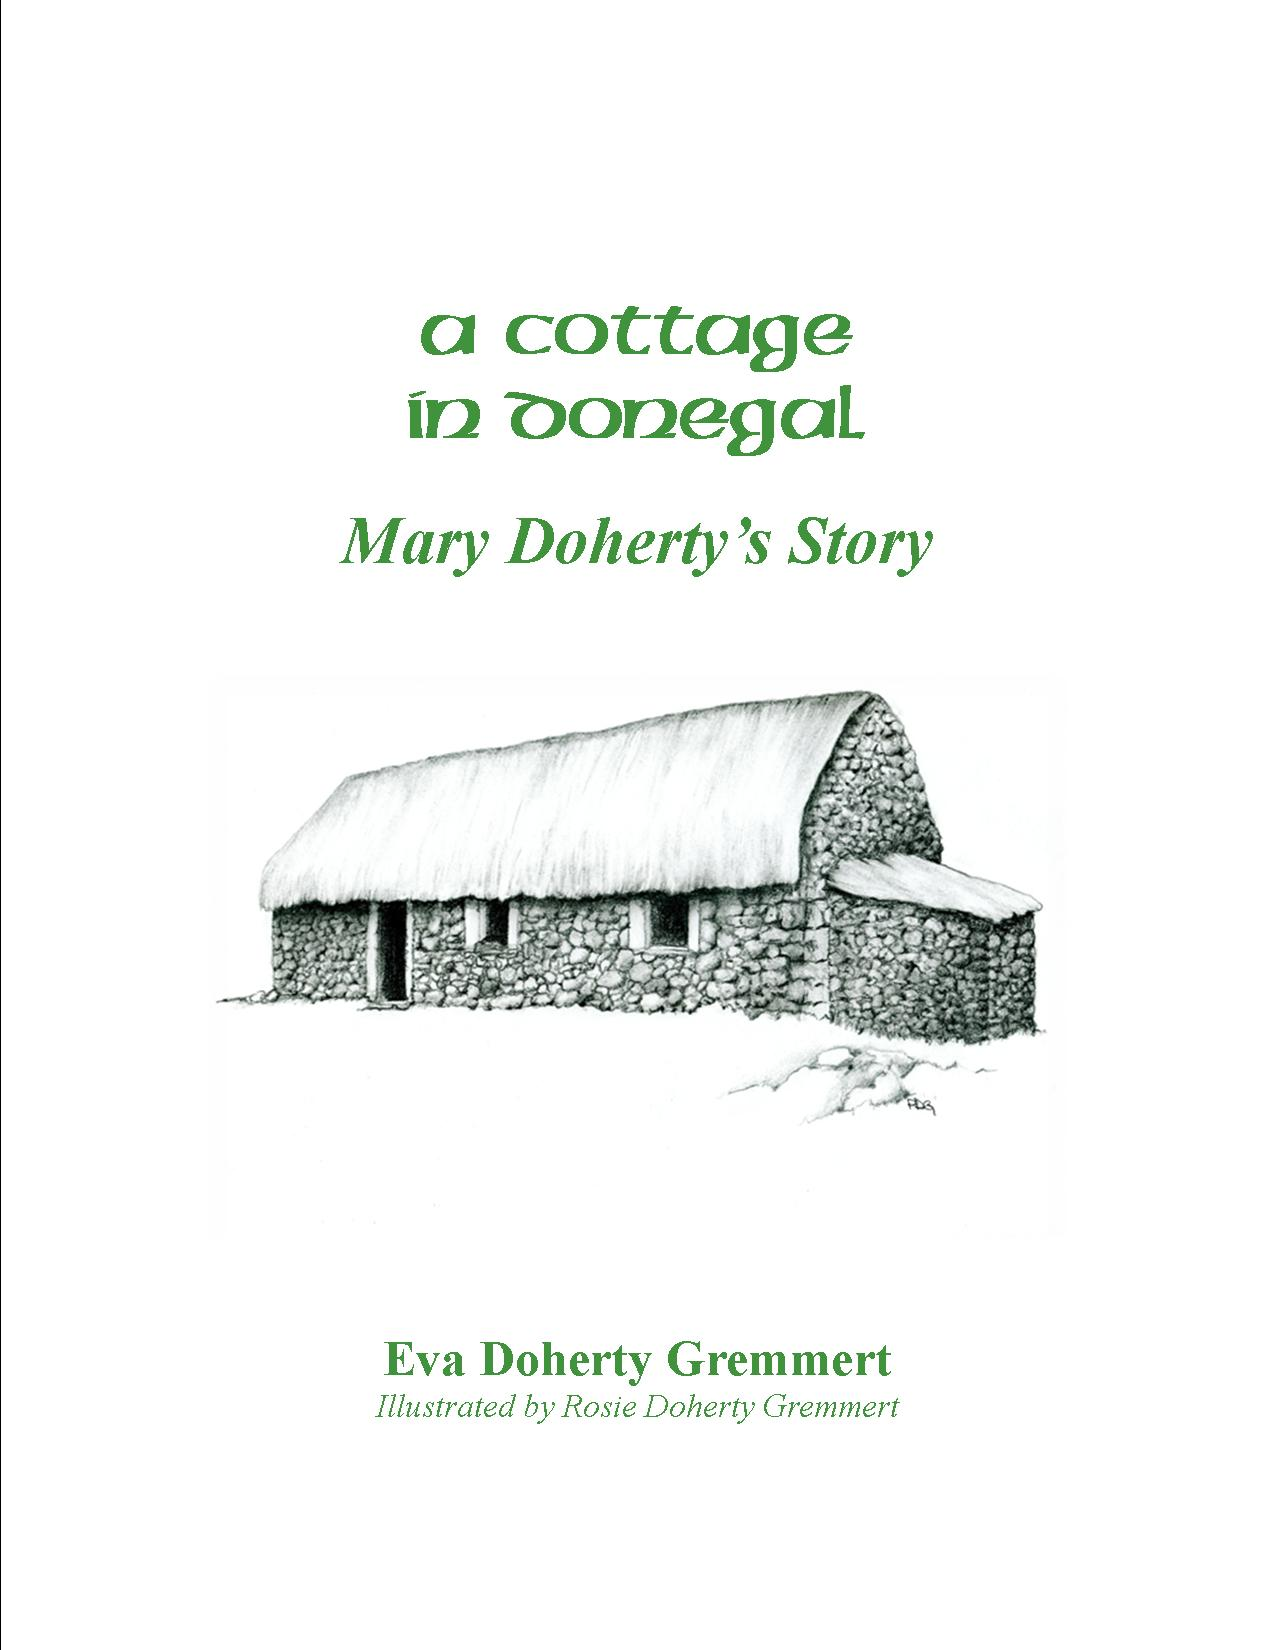 Mary Doherty